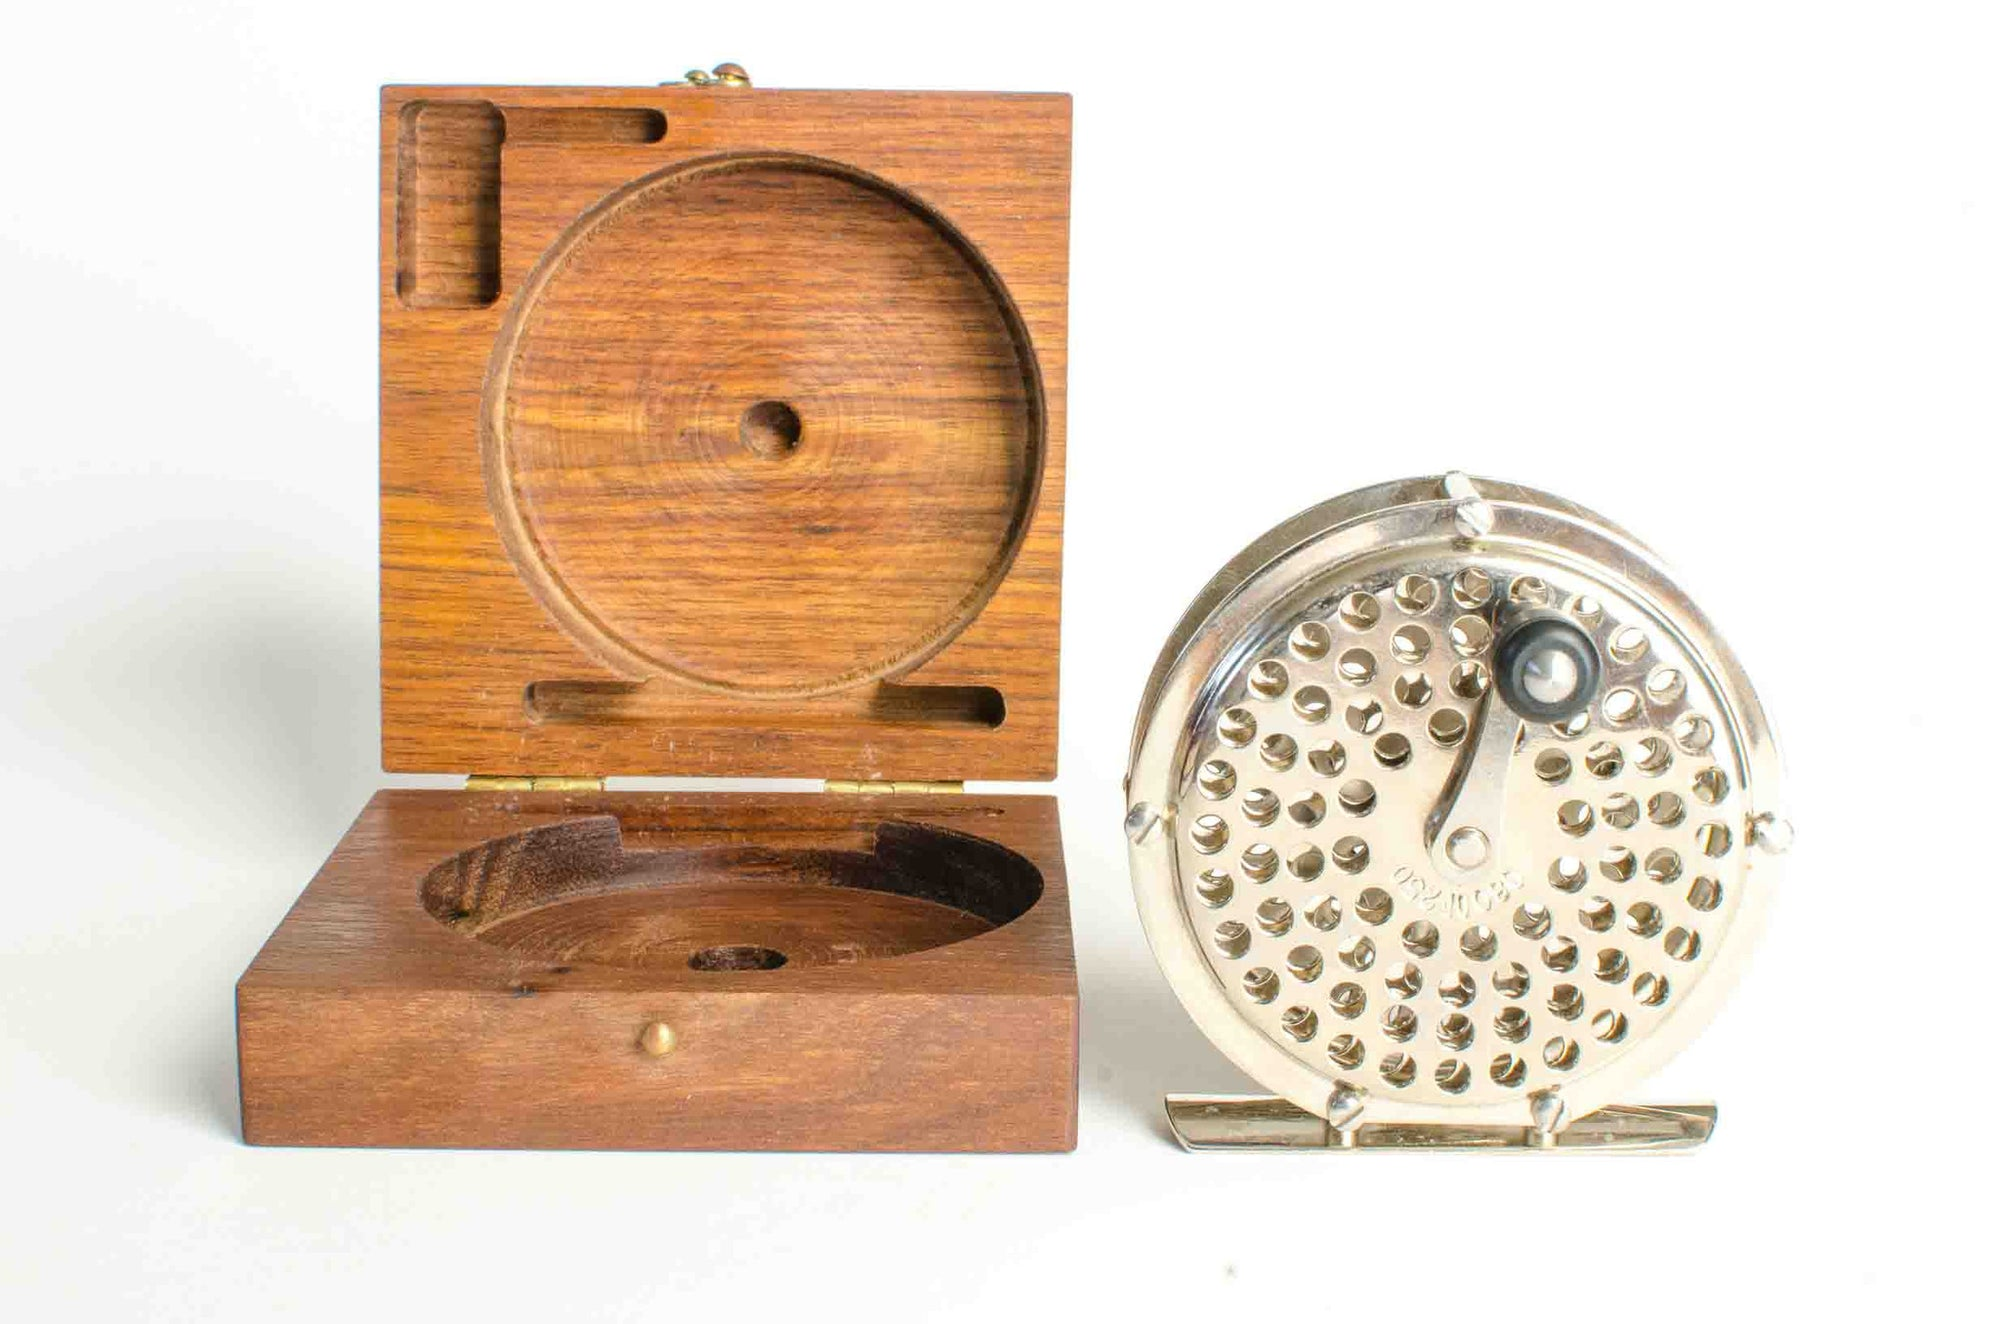 Orvis 1874 Limited Edition Reproduction Reel